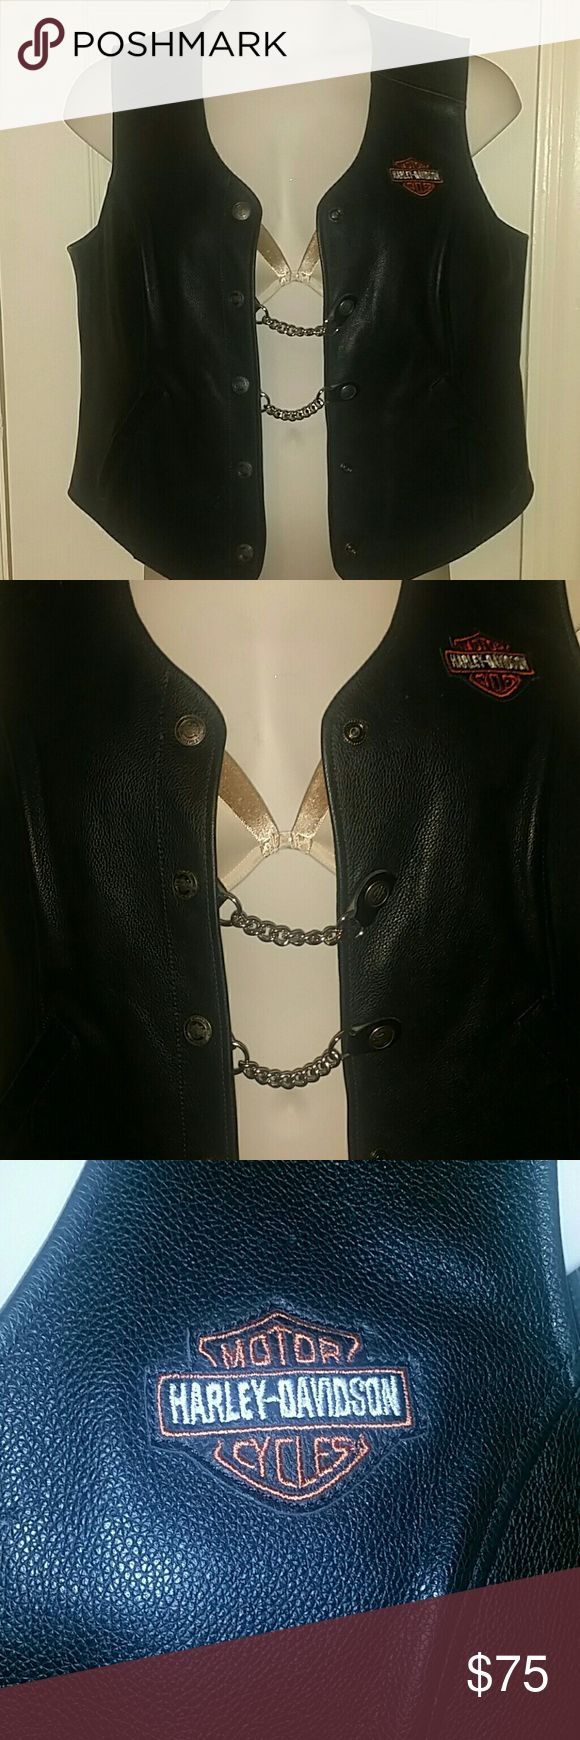 Harley Davidson Leather Vest Beautiful genuine HD leather button down vest..has 2 pockets and comes with 2 chain extenders...the extension chains change the look of the vest while allowing a bit of extra room if and wherever needed..they can even be used to dress up the pockets..size XL women's, but definitely unisex..any HD purchases between  $75 & $100.00 get a free HD gift card Harley Davidson  Jackets & Coats Vests